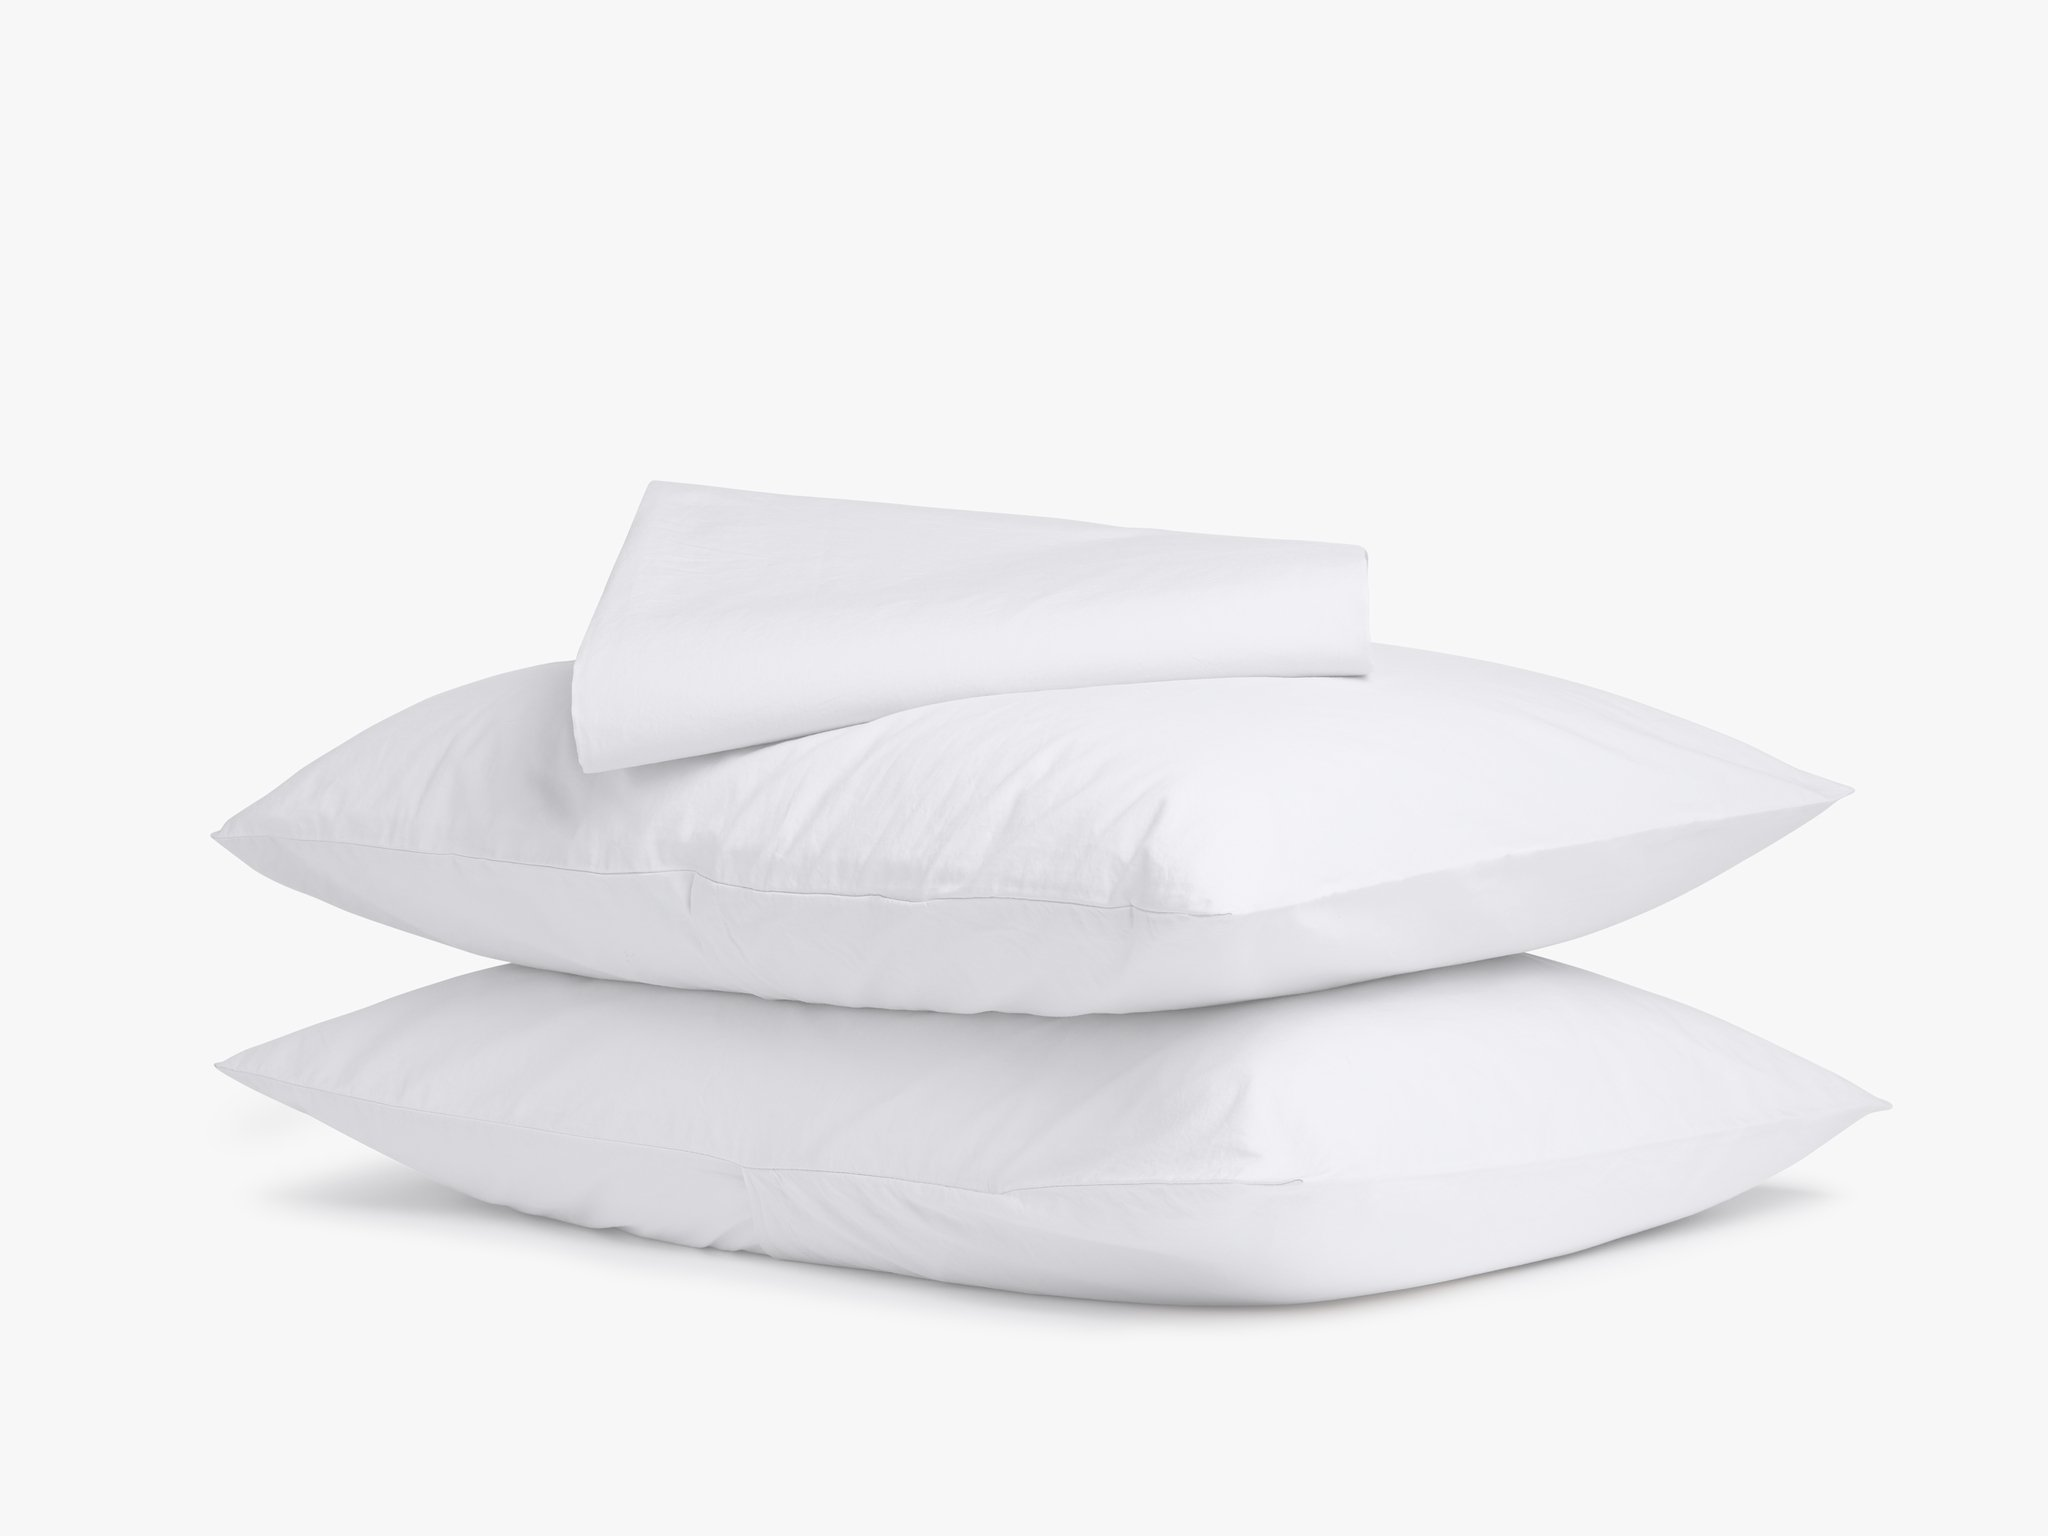 https://www.parachutehome.com/products/percale-sheet-set?affiliateID=131940&clickId=3254084349&opt-color-sheet=white&utm_campaign=affiliate&utm_medium=referral&utm_source=pepperjam